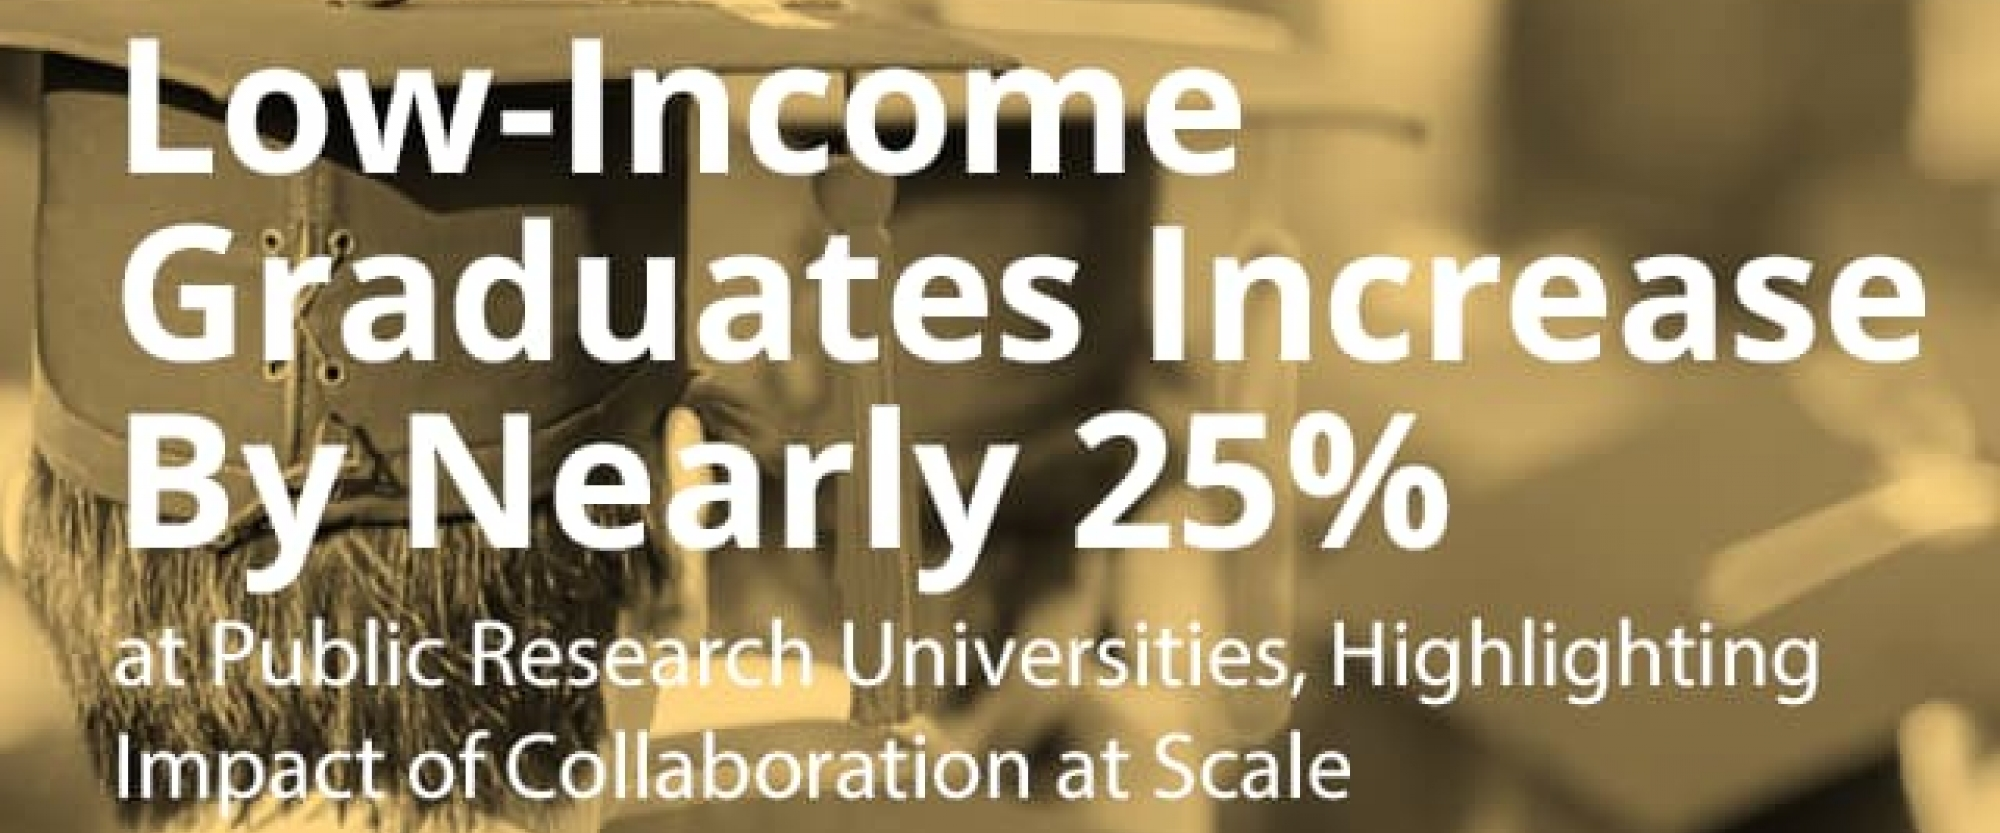 Public Research Universities Increase Low-Income Graduates by Nearly 25%, Highlighting Impact of Collaboration at Scale